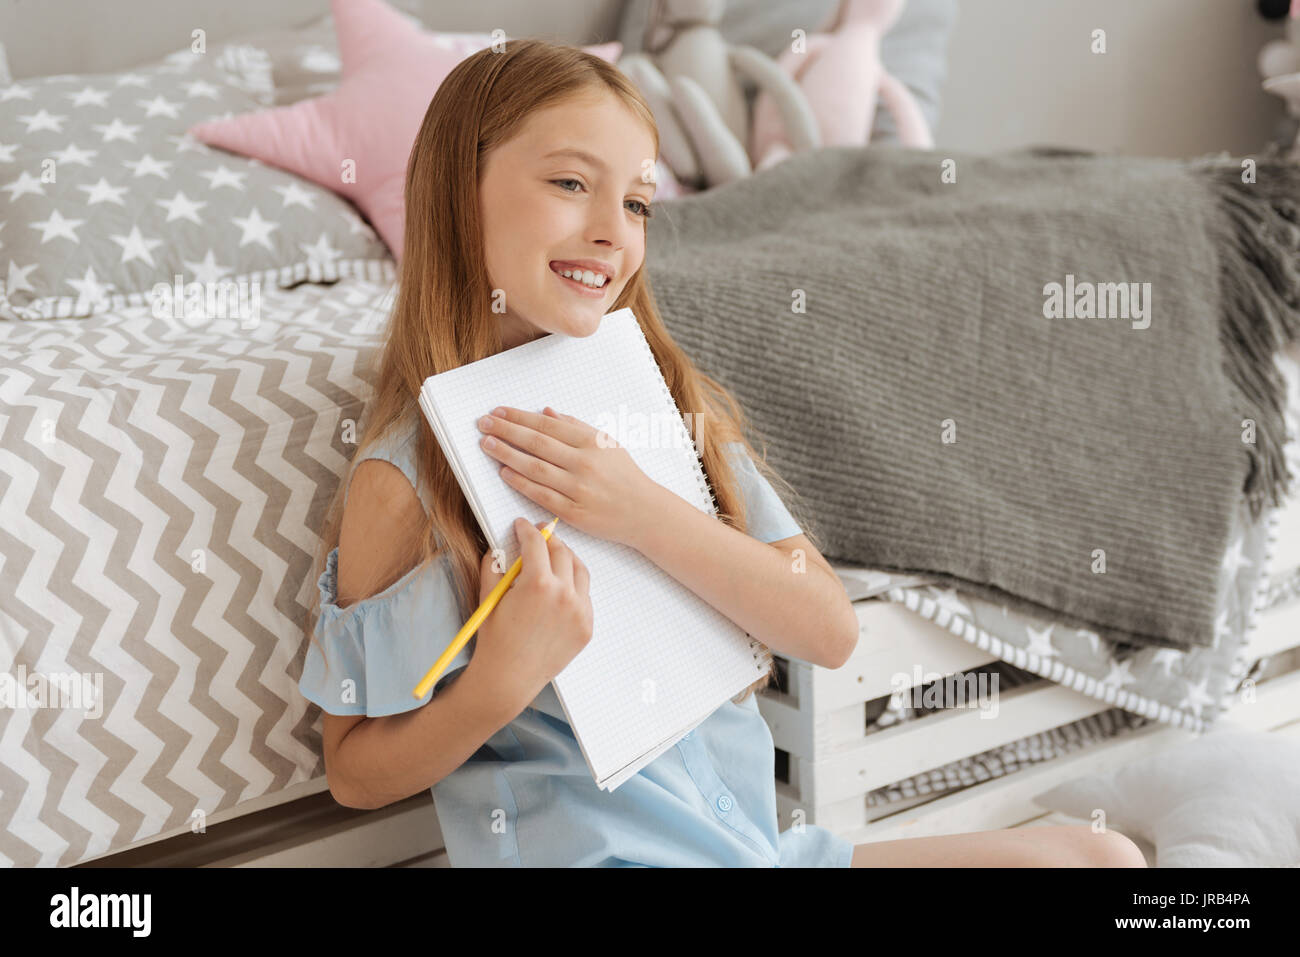 Radiant girl embracing notebook while drawing - Stock Image